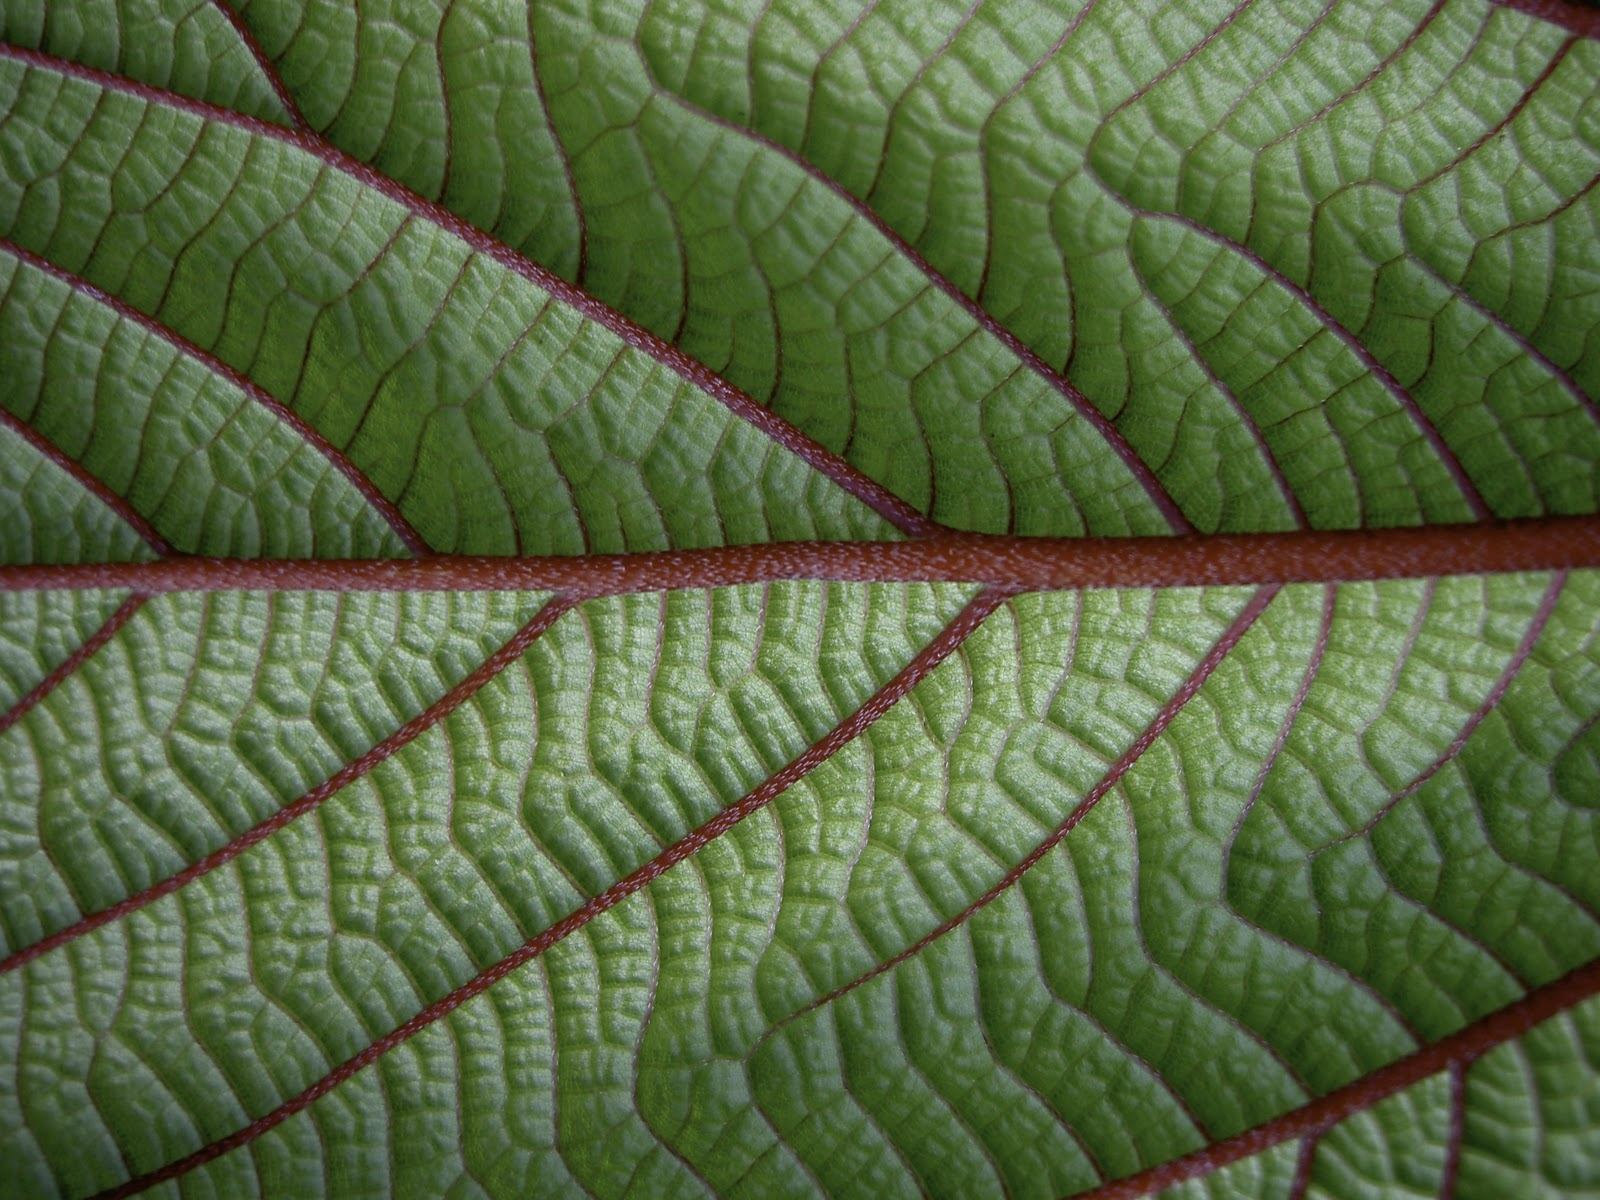 A close-up view of a Mamaki leaf shows the bright red veins. PHOTO: Tea Chest